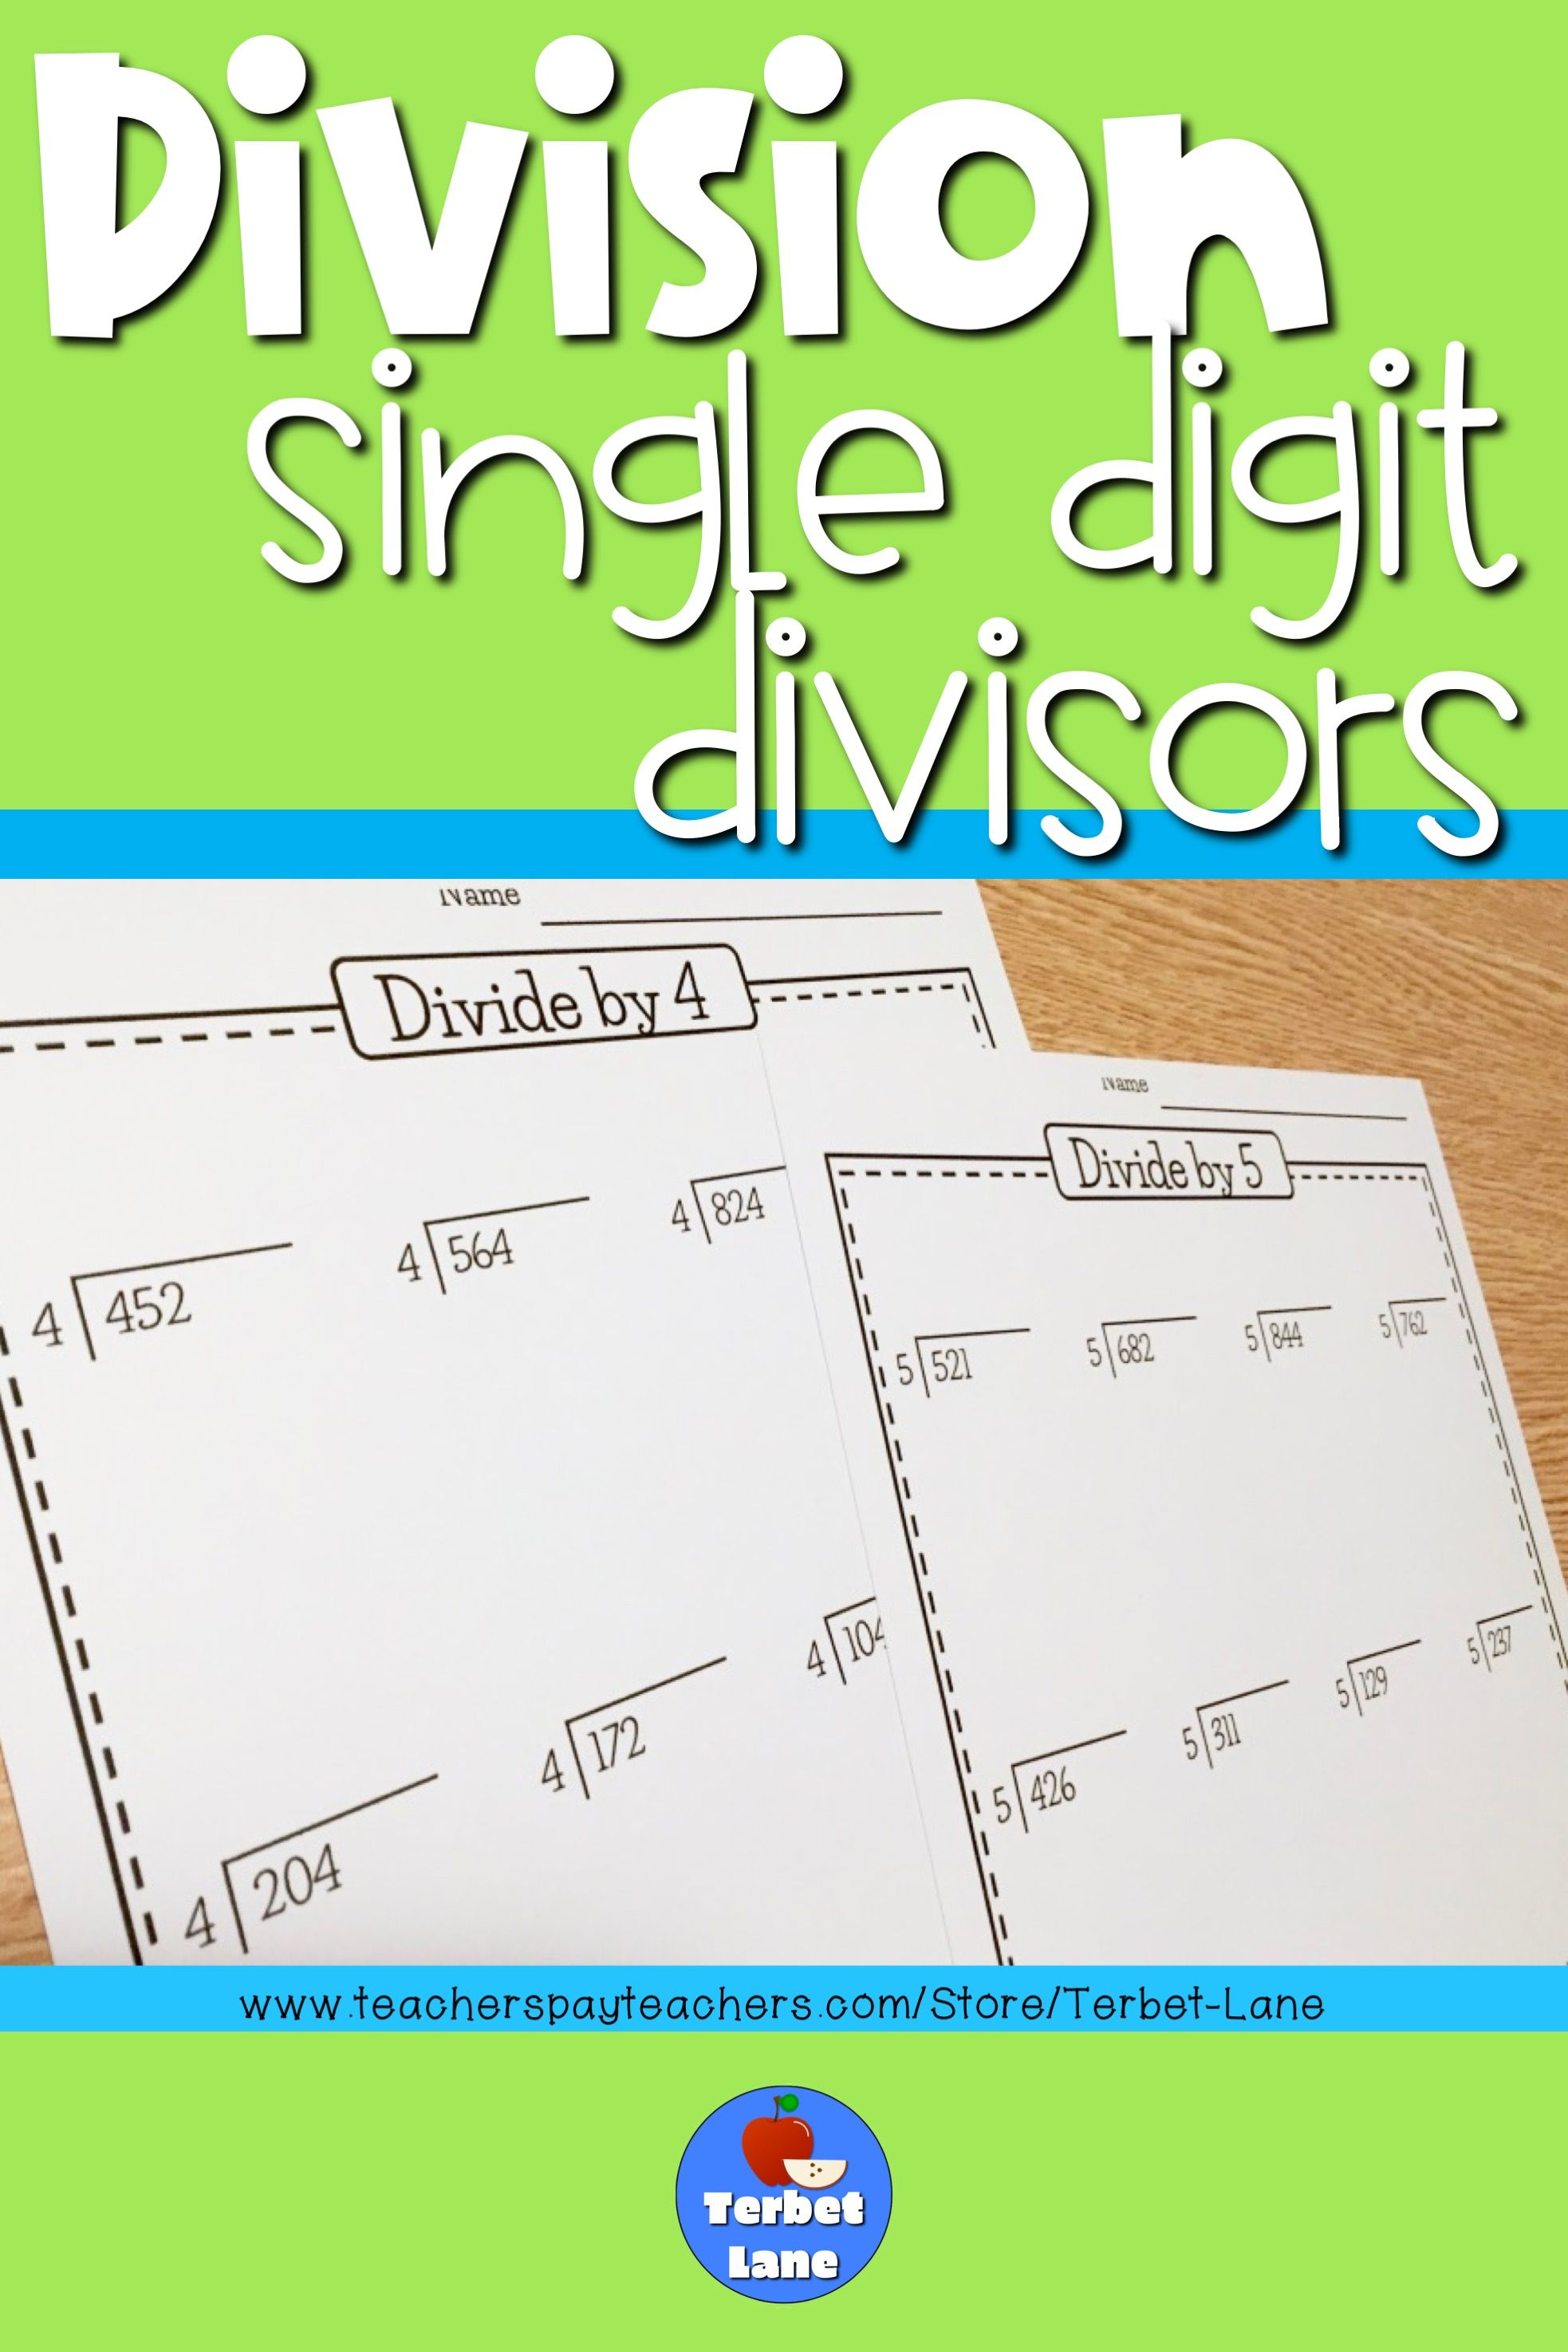 14 Best 5th Grade Division Worksheets 5 By 4 Images On